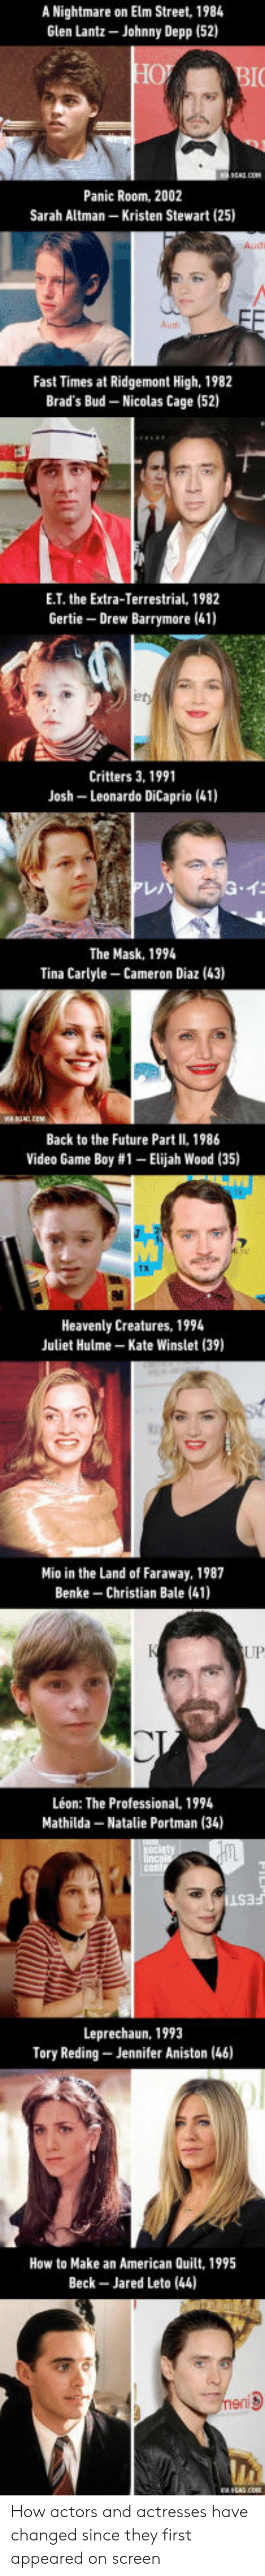 Drew Barrymore: A Nightmare on Elm Street, 1984  Glen Lantz-Johnny Depp (52)  Panic Room, 2002  Sarah Altman-Kristen Stewart (25)  Audi  Aud  Fast Times at Ridgemont High, 1982  Brad's Bud Nicolas Cage (52)  E.T. the Extra-Terrestrial, 1982  Gertie Drew Barrymore (41)  et  Critters 3, 1991  Leonardo DiCaprio (41)  Josh  仁  The Mask, 1994  Tina Carlyle-Cameron Diaz (43)  Back to the Future Part II, 1986  Video Game Boy #1-Elijah Wood (35)  Heavenly Creatures, 1994  Juliet Hulme Kate Winslet (39)  Mio in the Land of Faraway, 1987  Benke Christian Bale (41)  UP  Léon: The Professional, 19  Mathilda Natalie Portman (34)  Leprechaun, 1993  Tory Reding Jennifer Aniston (46)  How to Make an American Quilt, 1995  Beck- Jared Leto (44) How actors and actresses have changed since they first appeared on screen